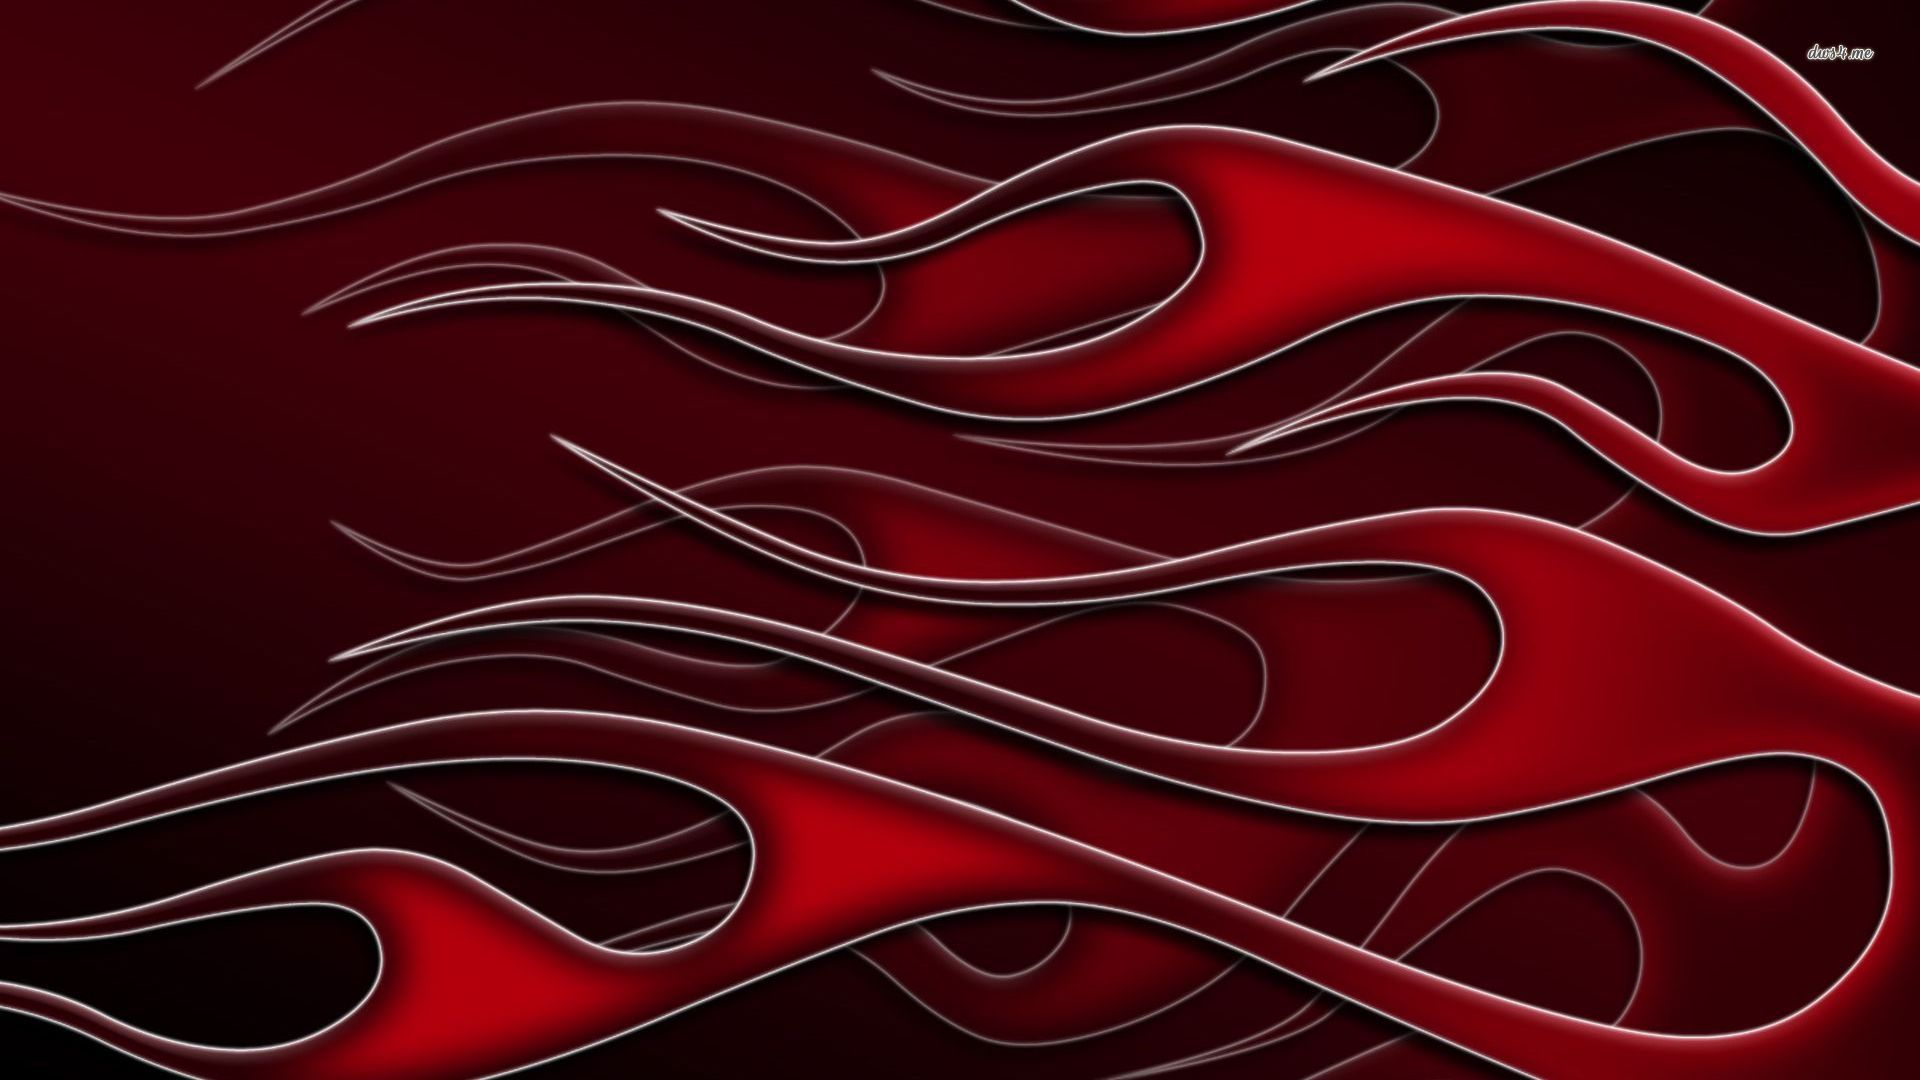 Red Flames wallpaper   Abstract wallpapers   5256 1920x1080